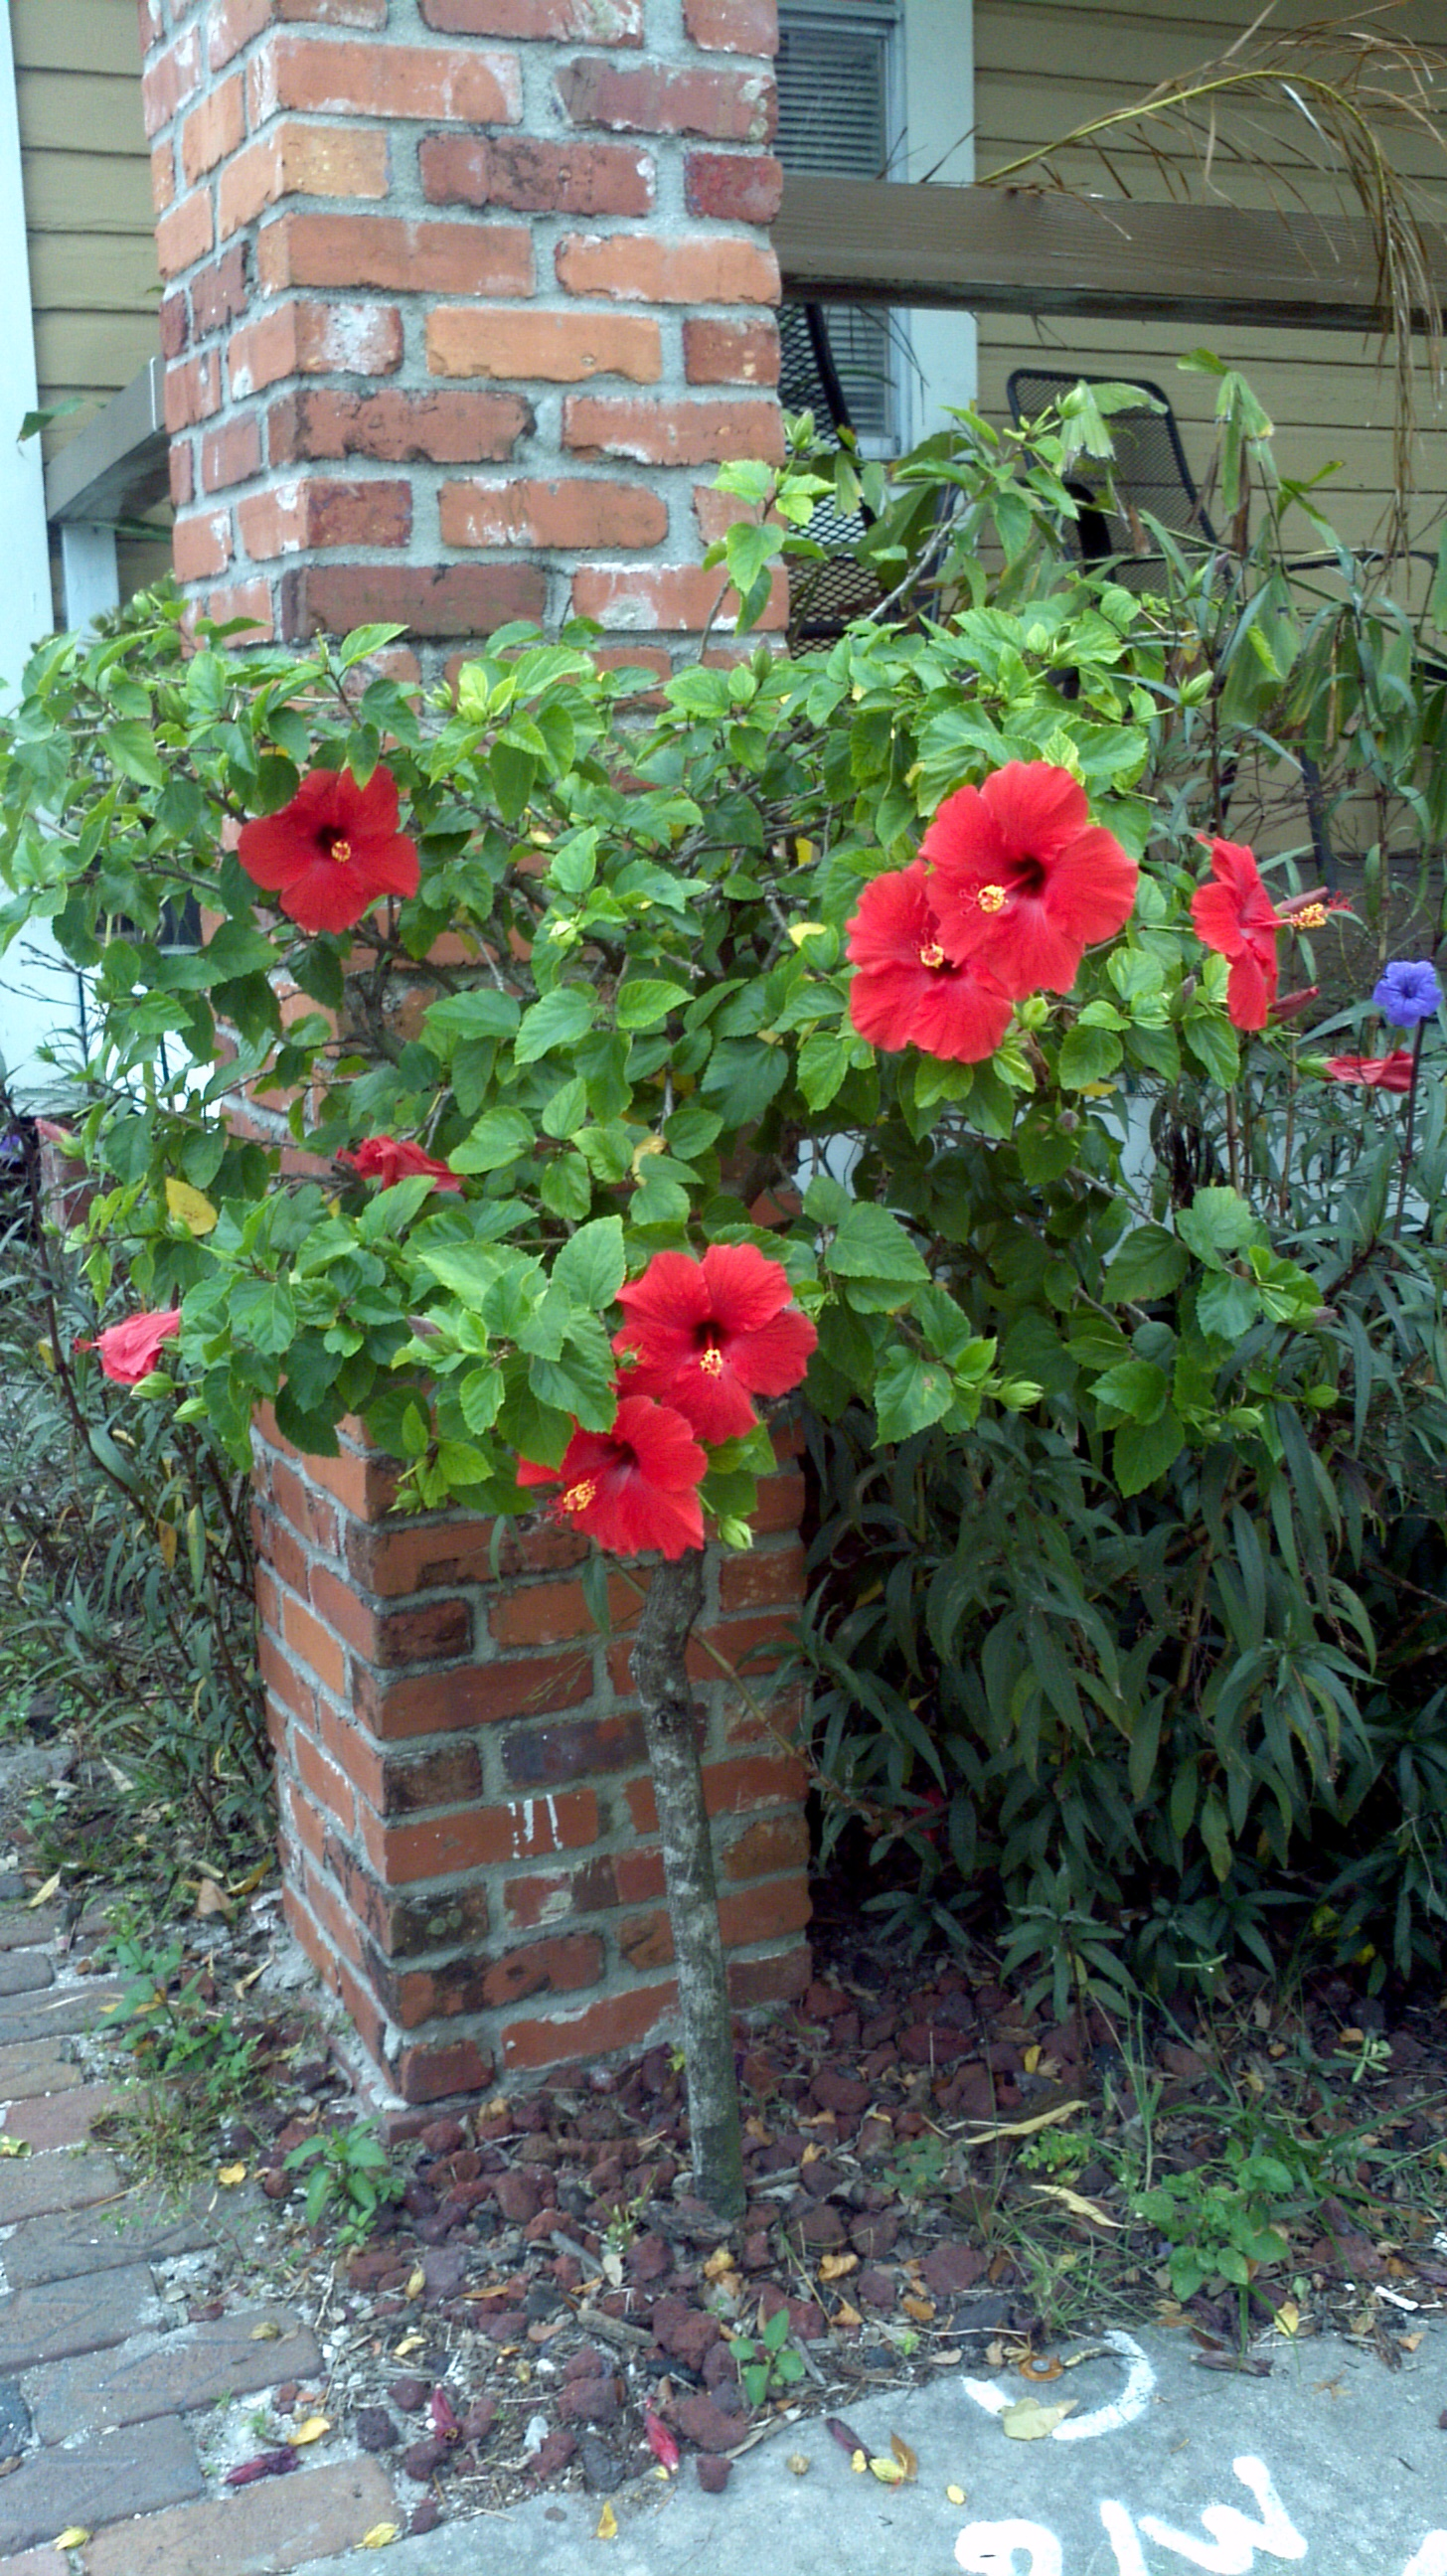 Buy hibiscus for sale in miami kendall ft lauderdale hibiscus izmirmasajfo Image collections